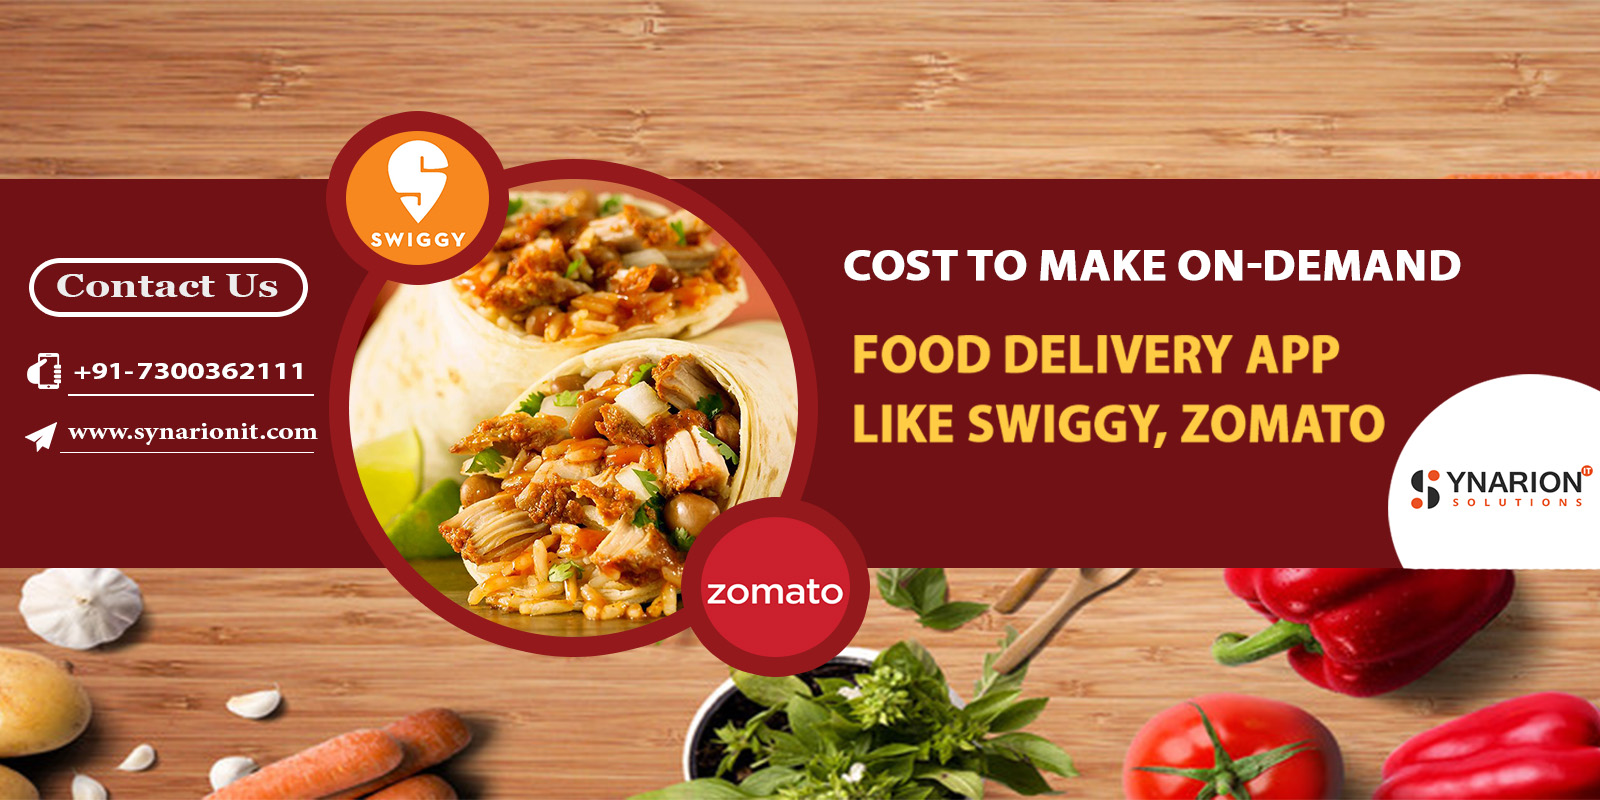 Cost To Make On-Demand Food Delivery App Like Swiggy, Zomato